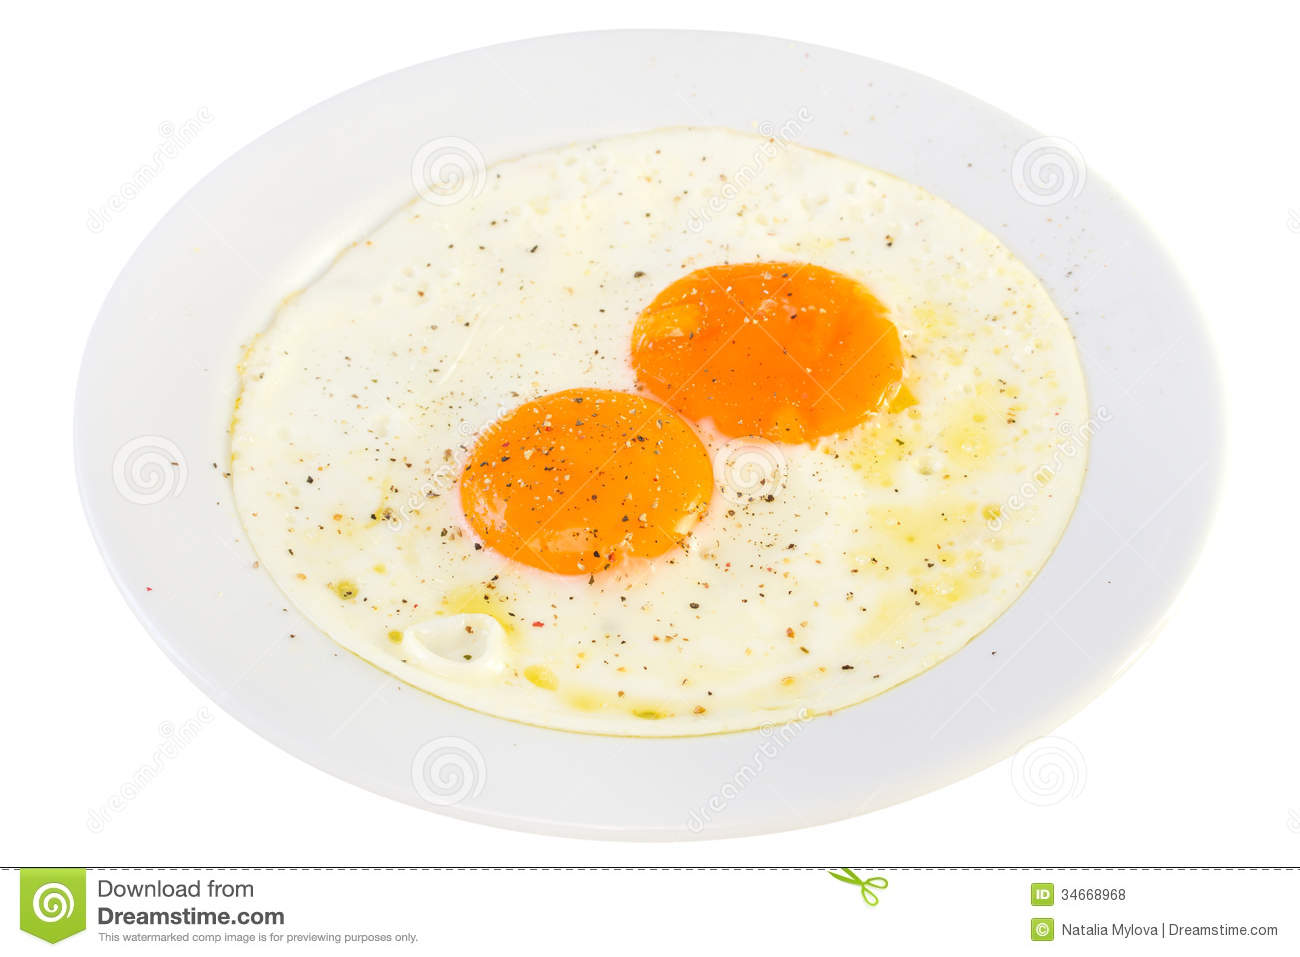 Fried Eggs On Plate Royalty Free Stock Photo - Image: 34421155  |Fried Eggs On A Plate